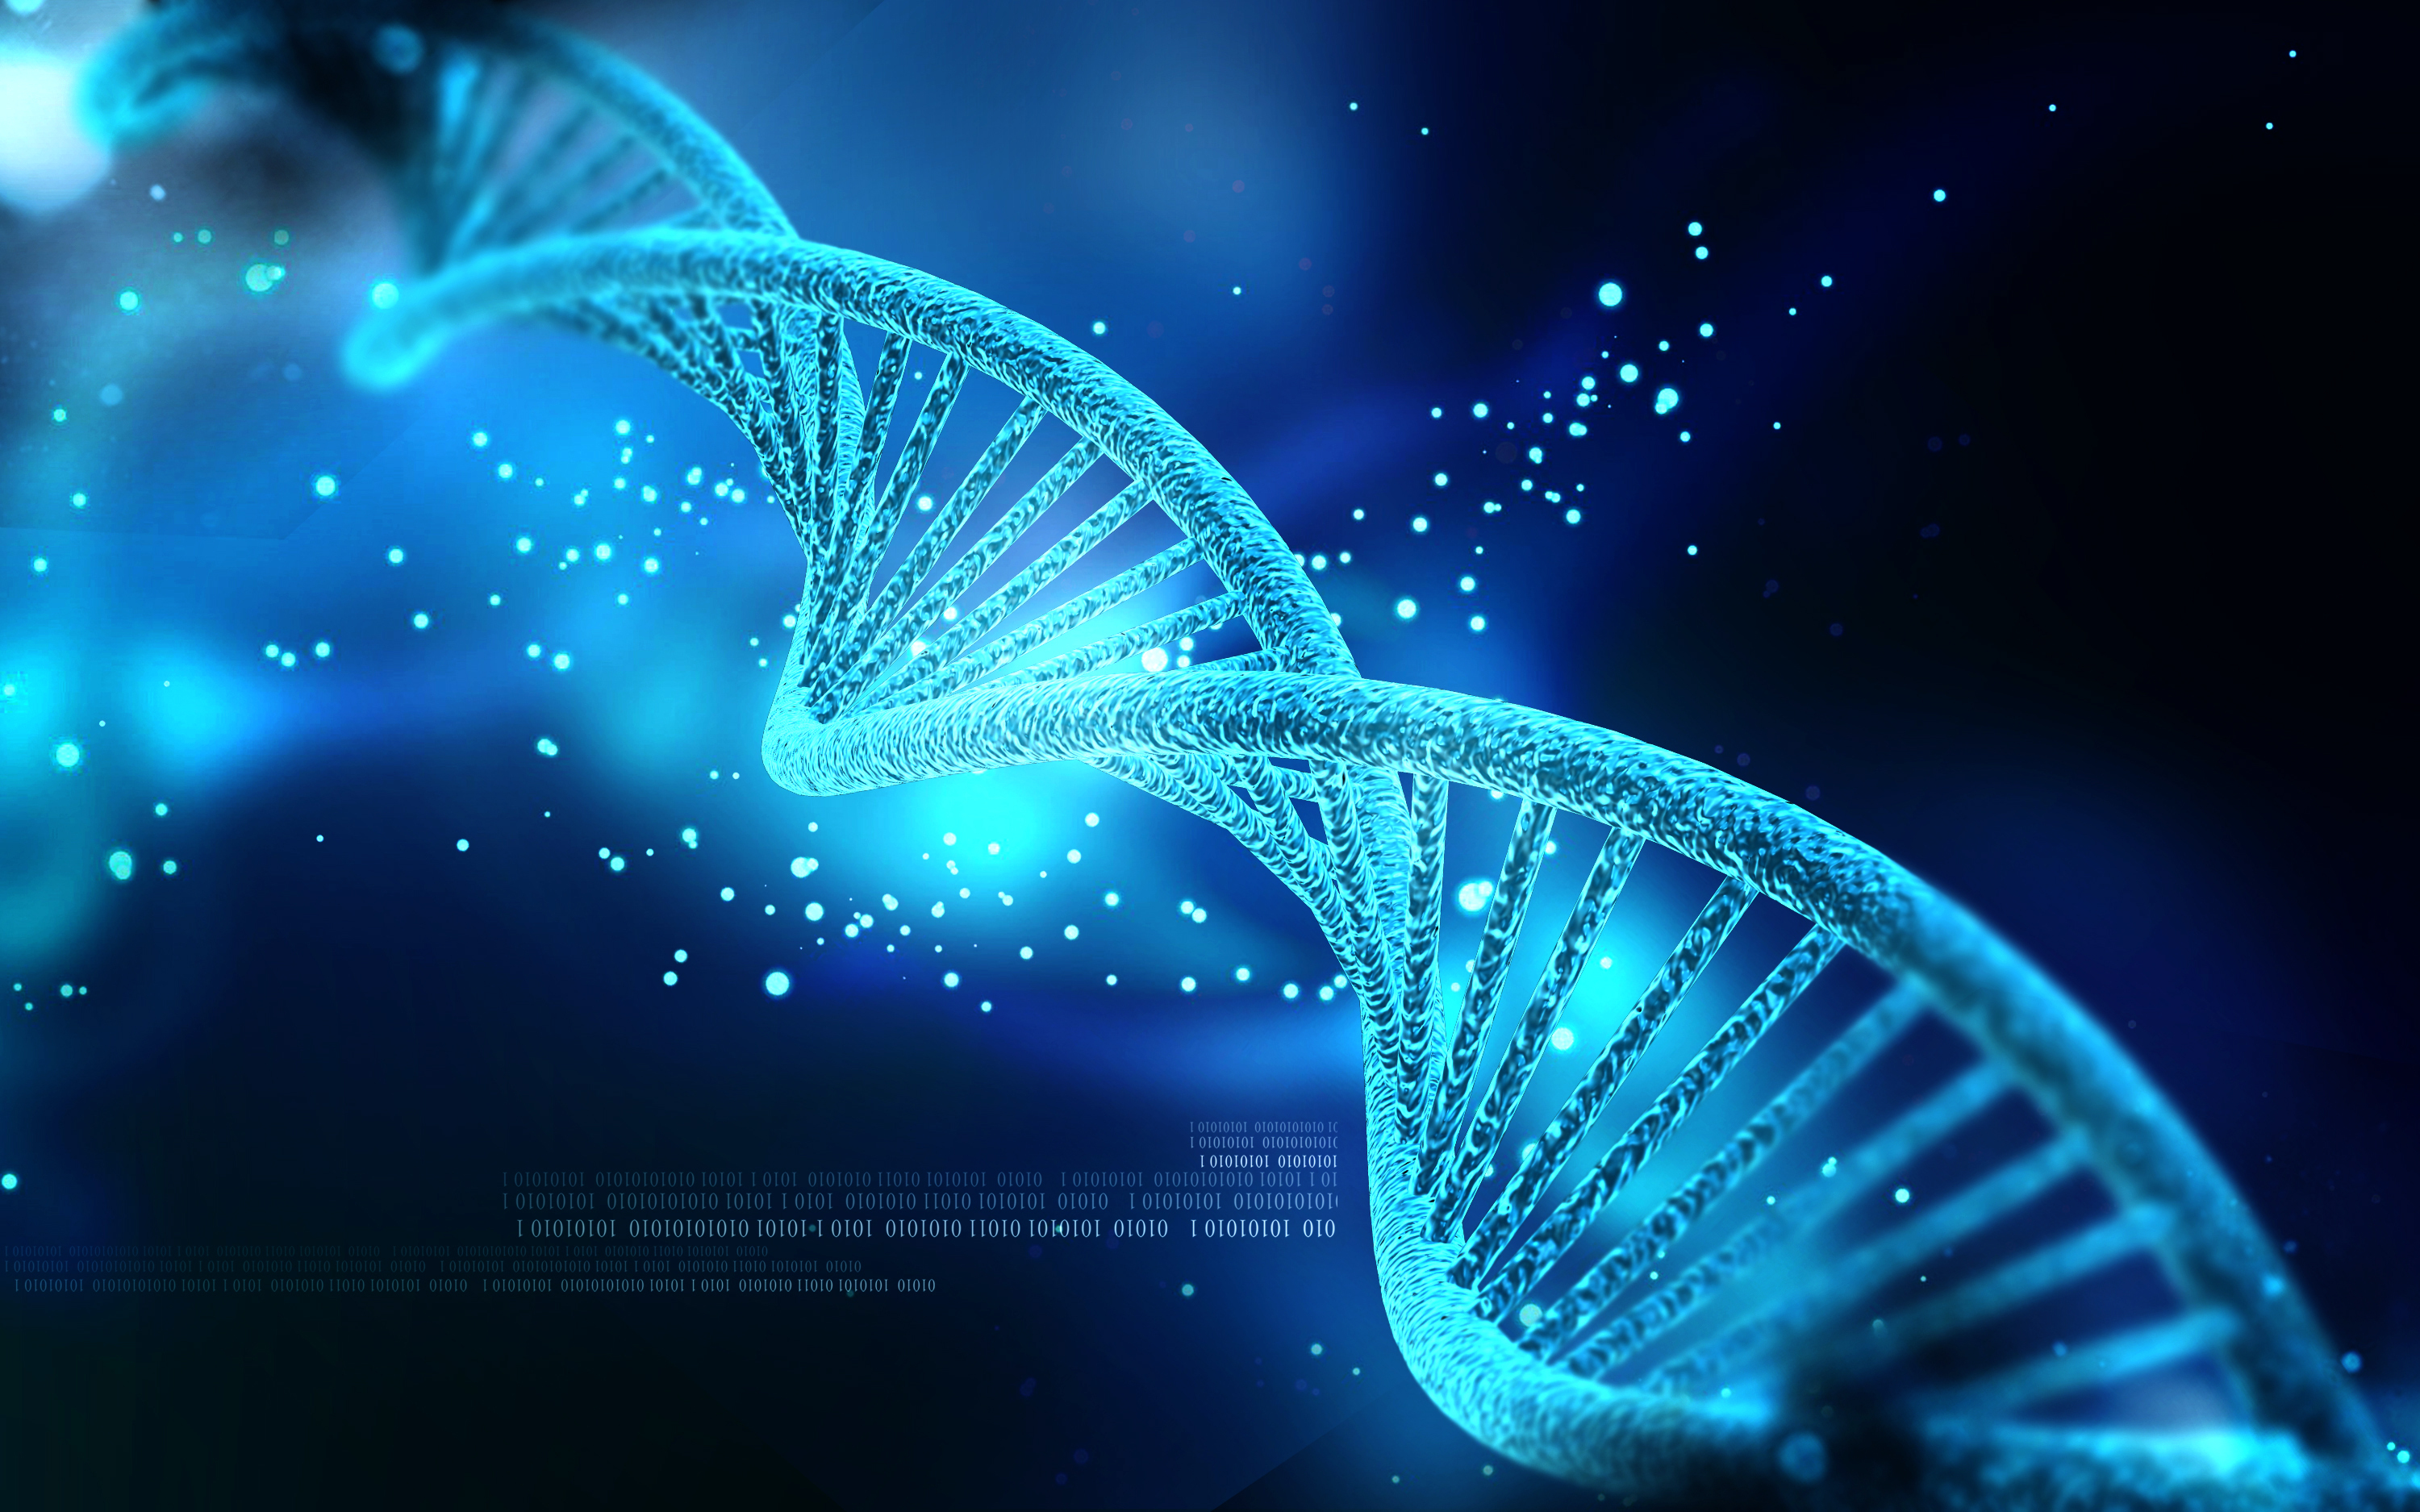 human dna will be